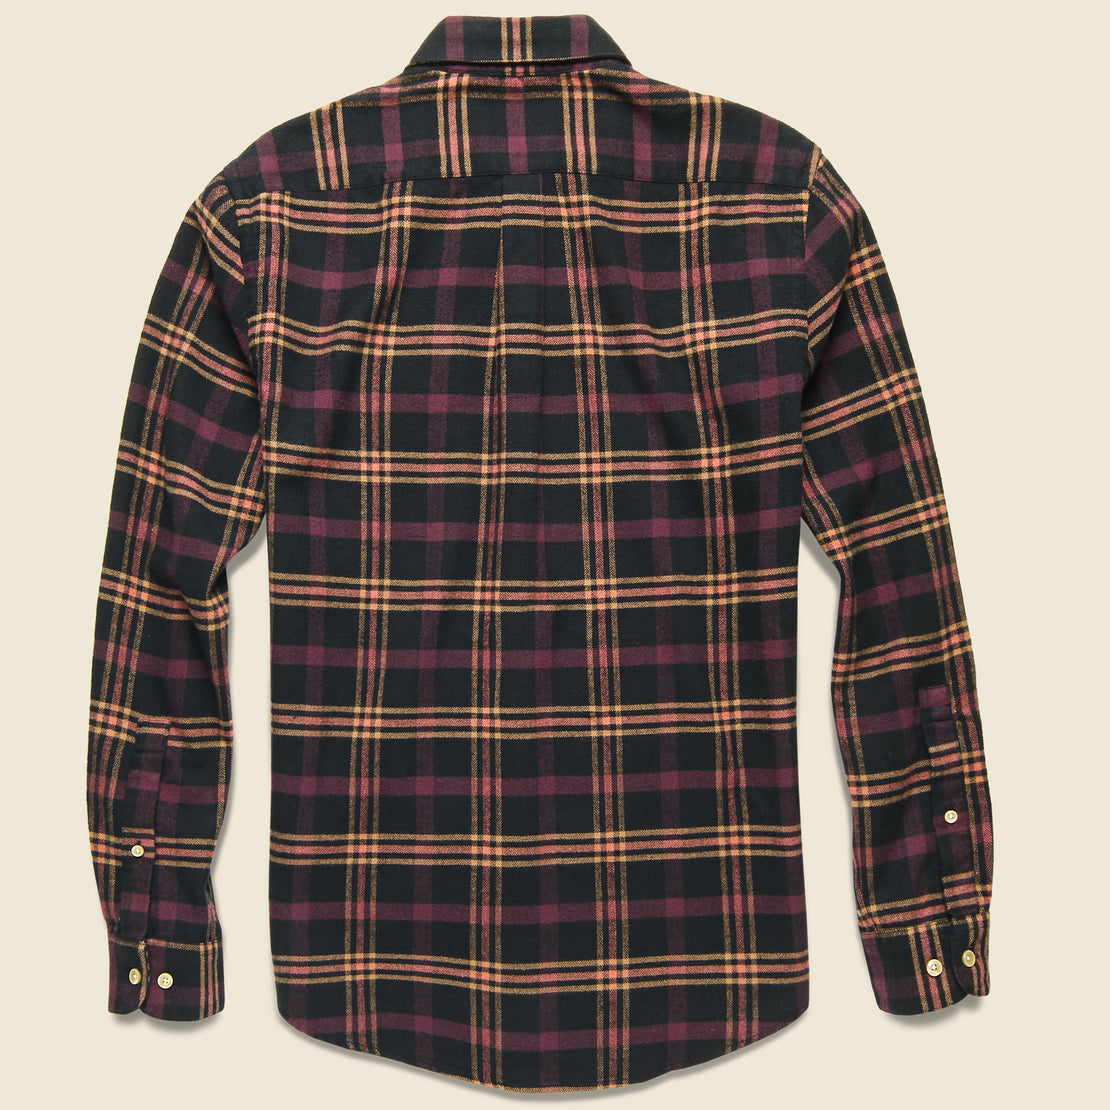 Compact Plaid Flannel - Black/Pink